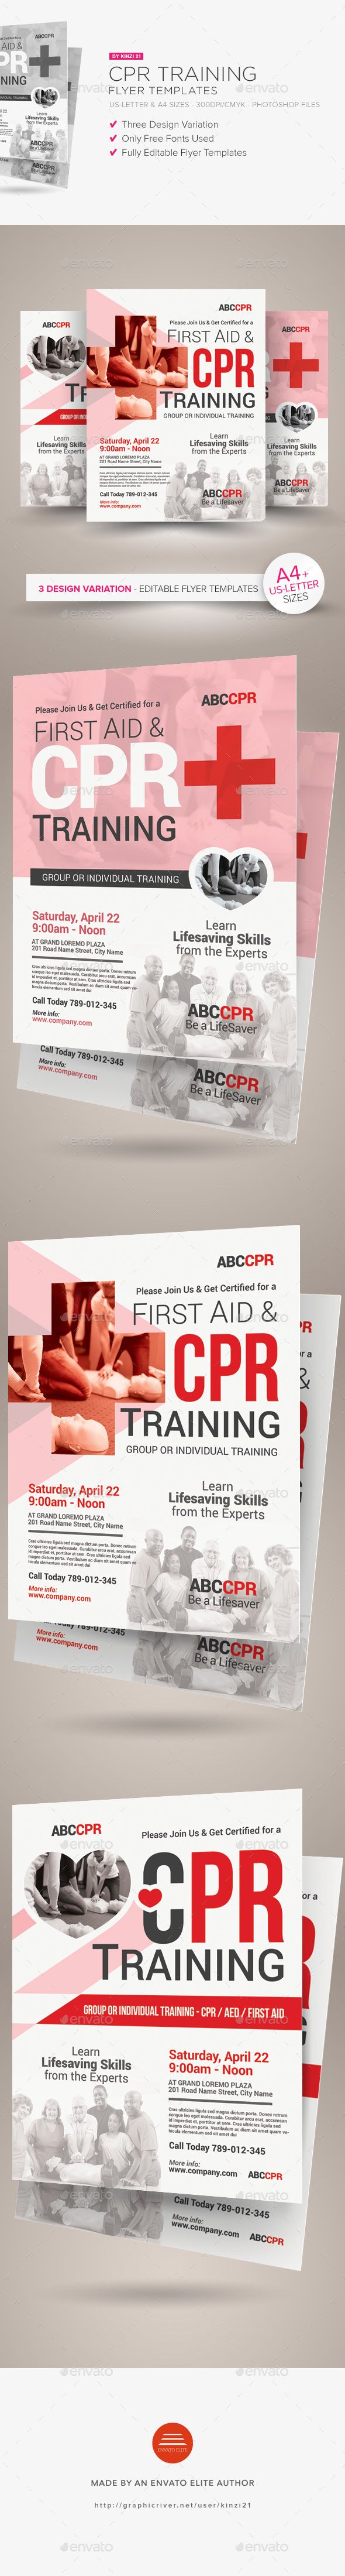 Best 25 cpr training ideas on pinterest cardiopulmonary cpr training flyer templates xflitez Image collections